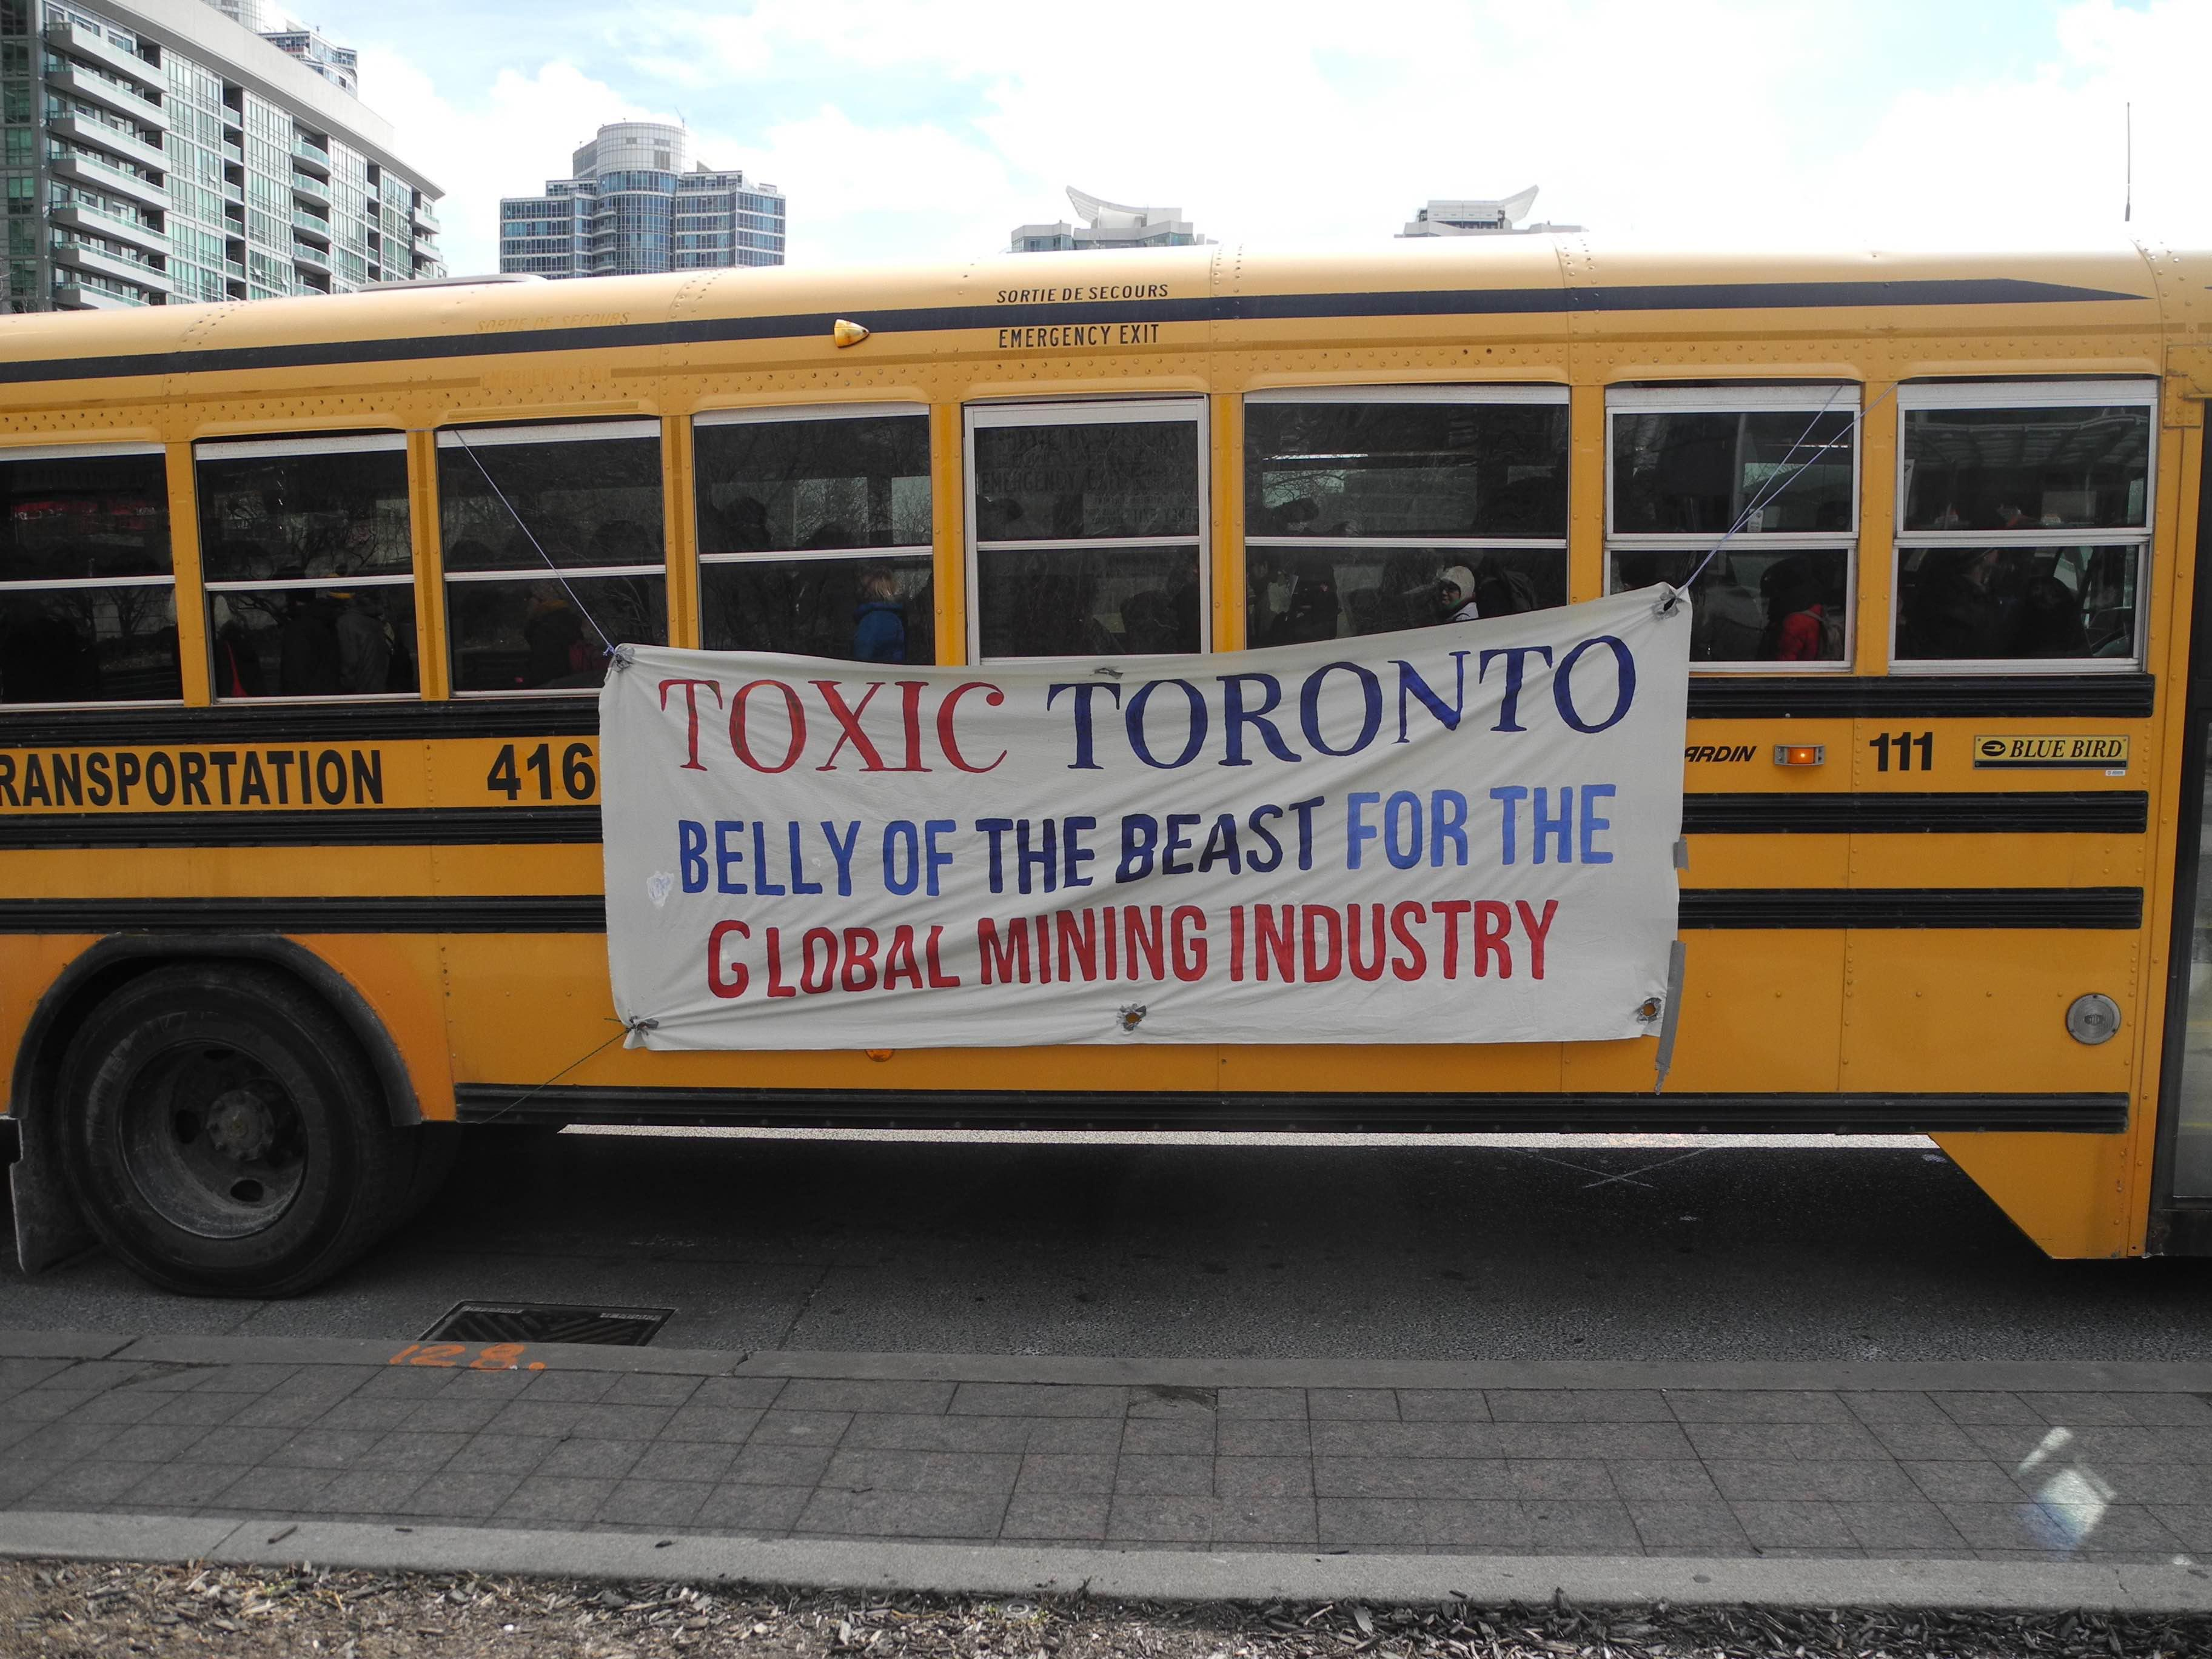 'Toxic Toronto' bus tour; a trip through the mining industry's belly of the beast